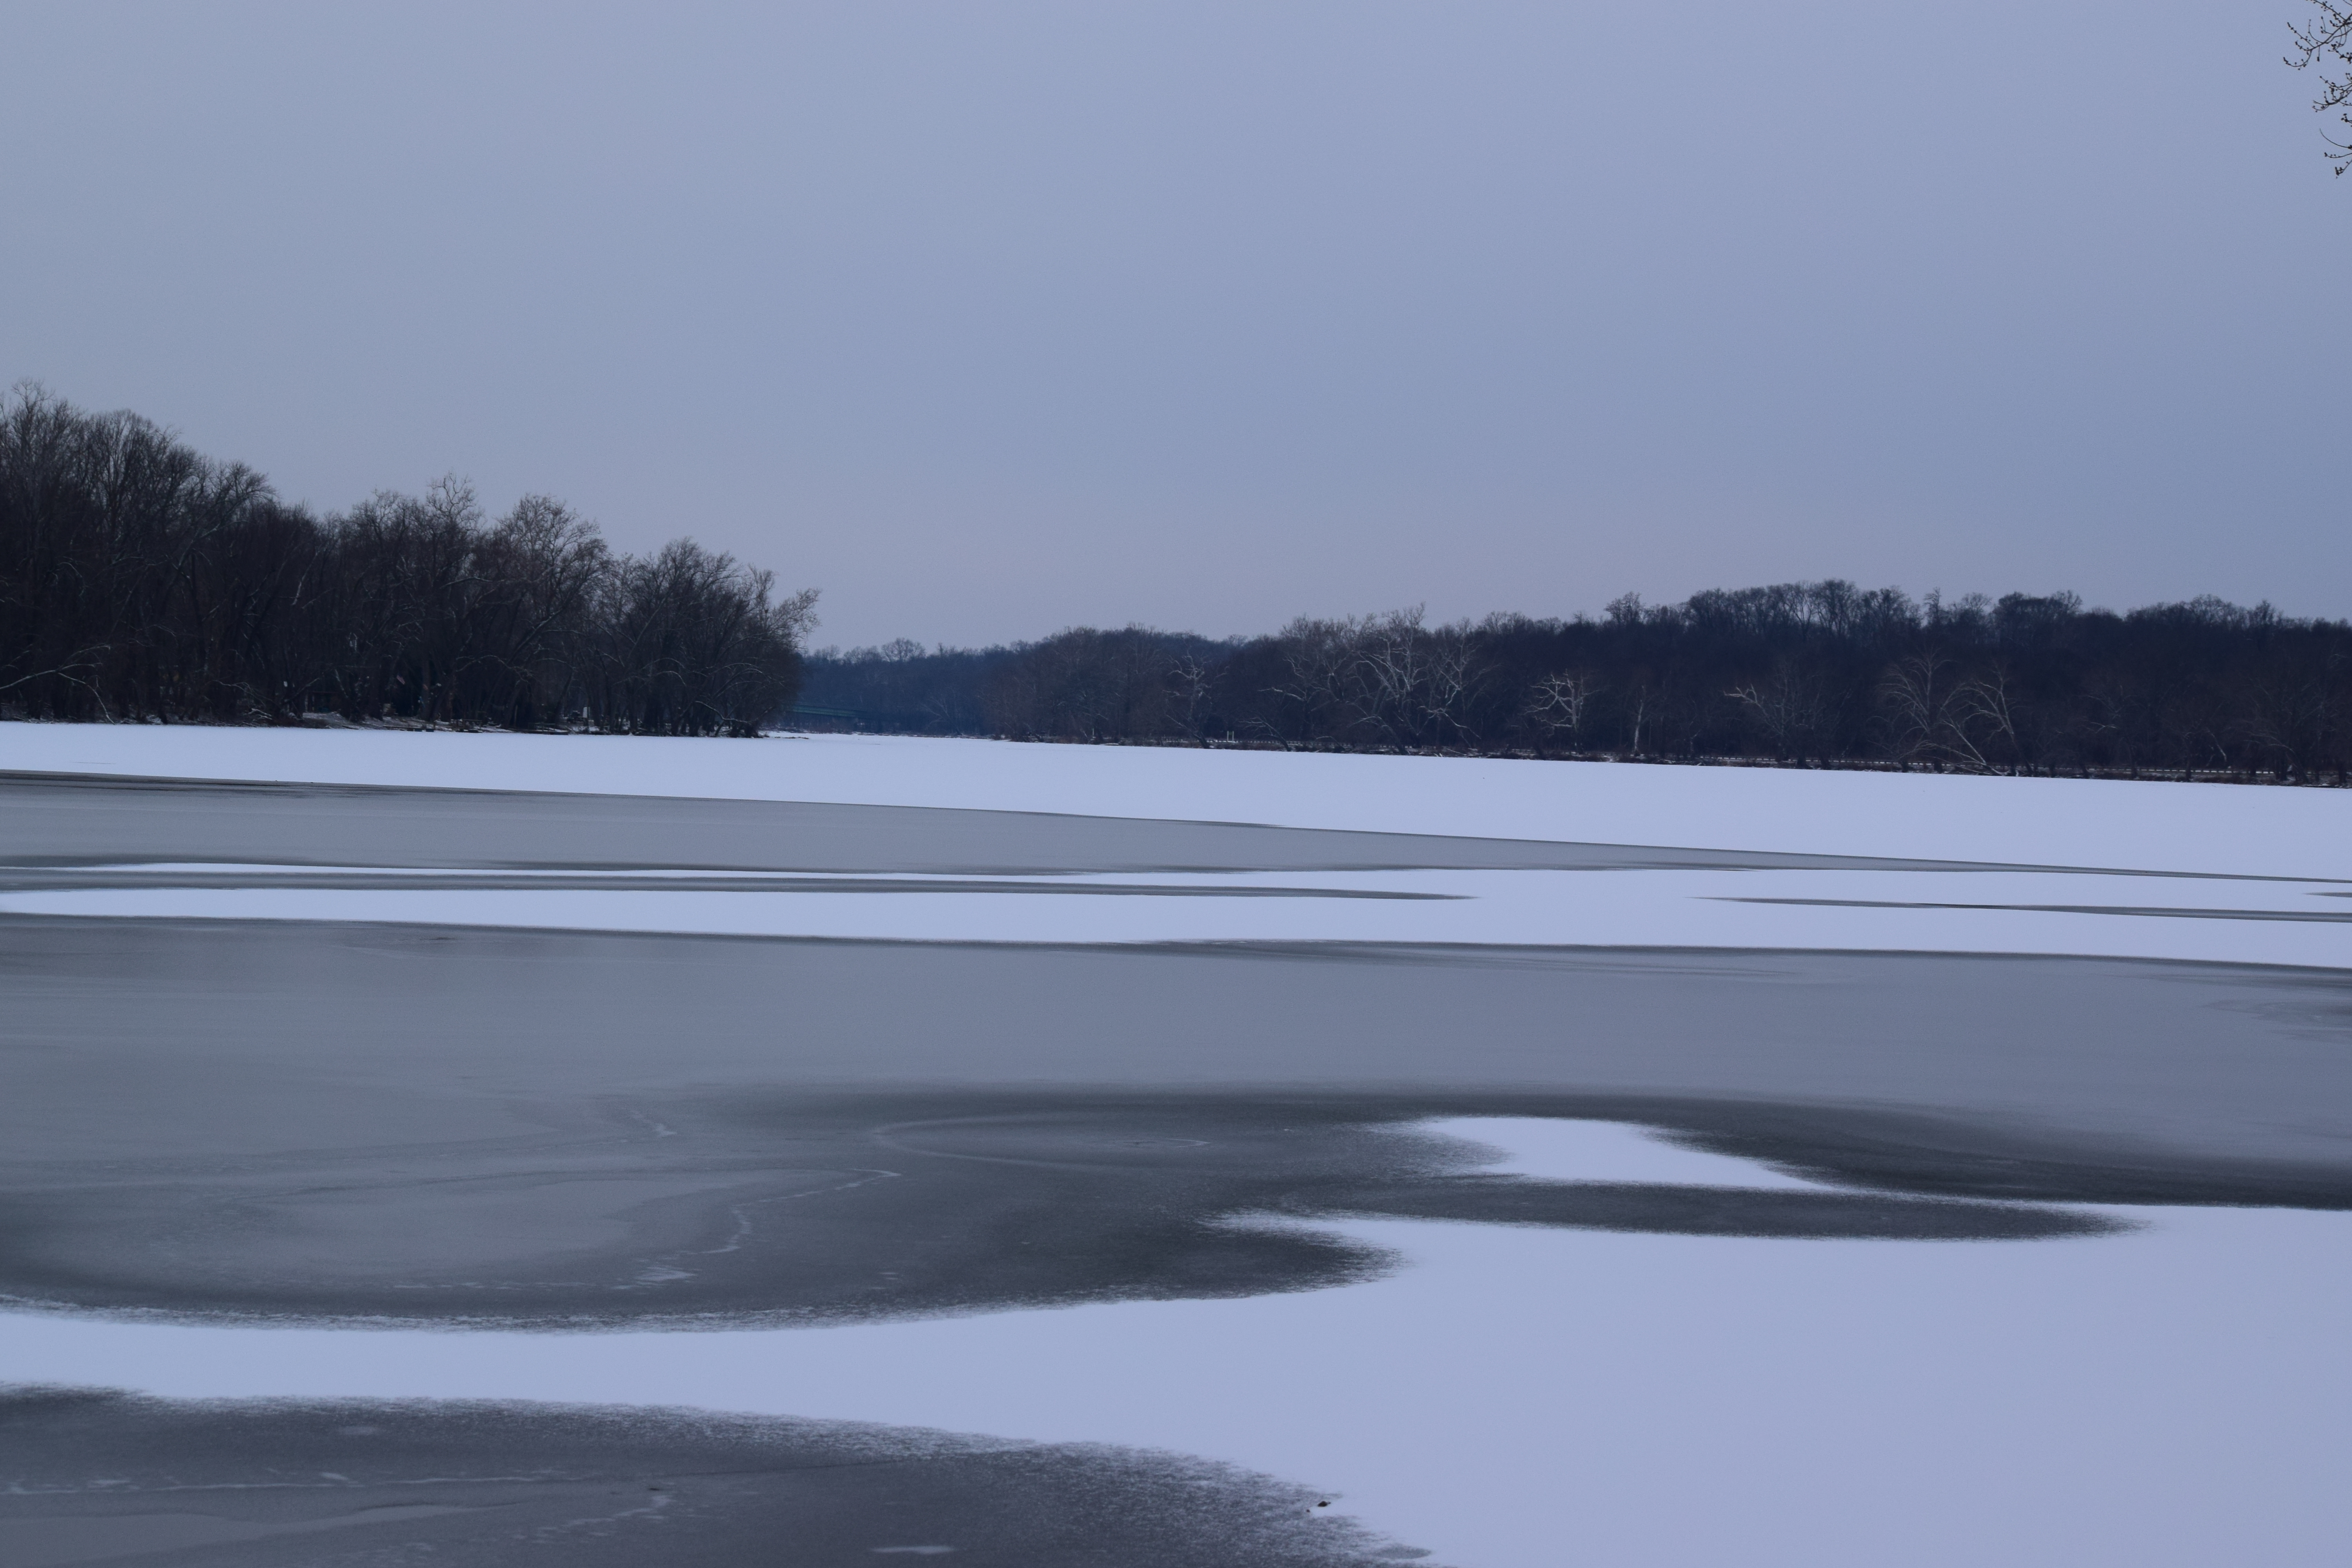 Shenandoah River at Sunrise on a Snowy Day